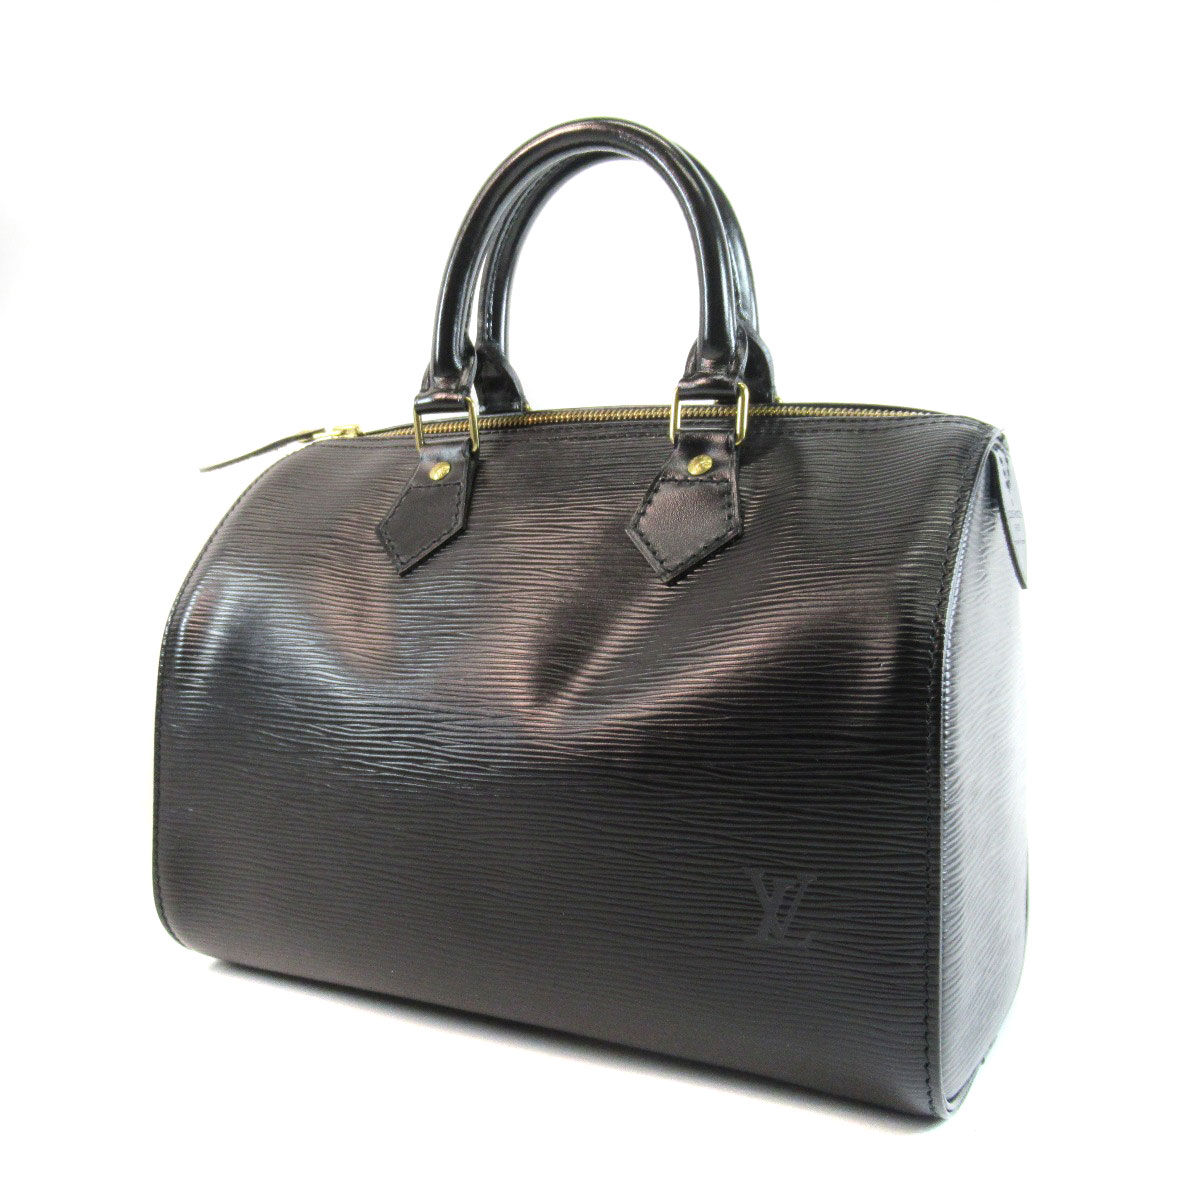 LOUIS VUITTON  LOUIS VUITTON  M59232 Handbag Epi Leather ... 4f8567c174